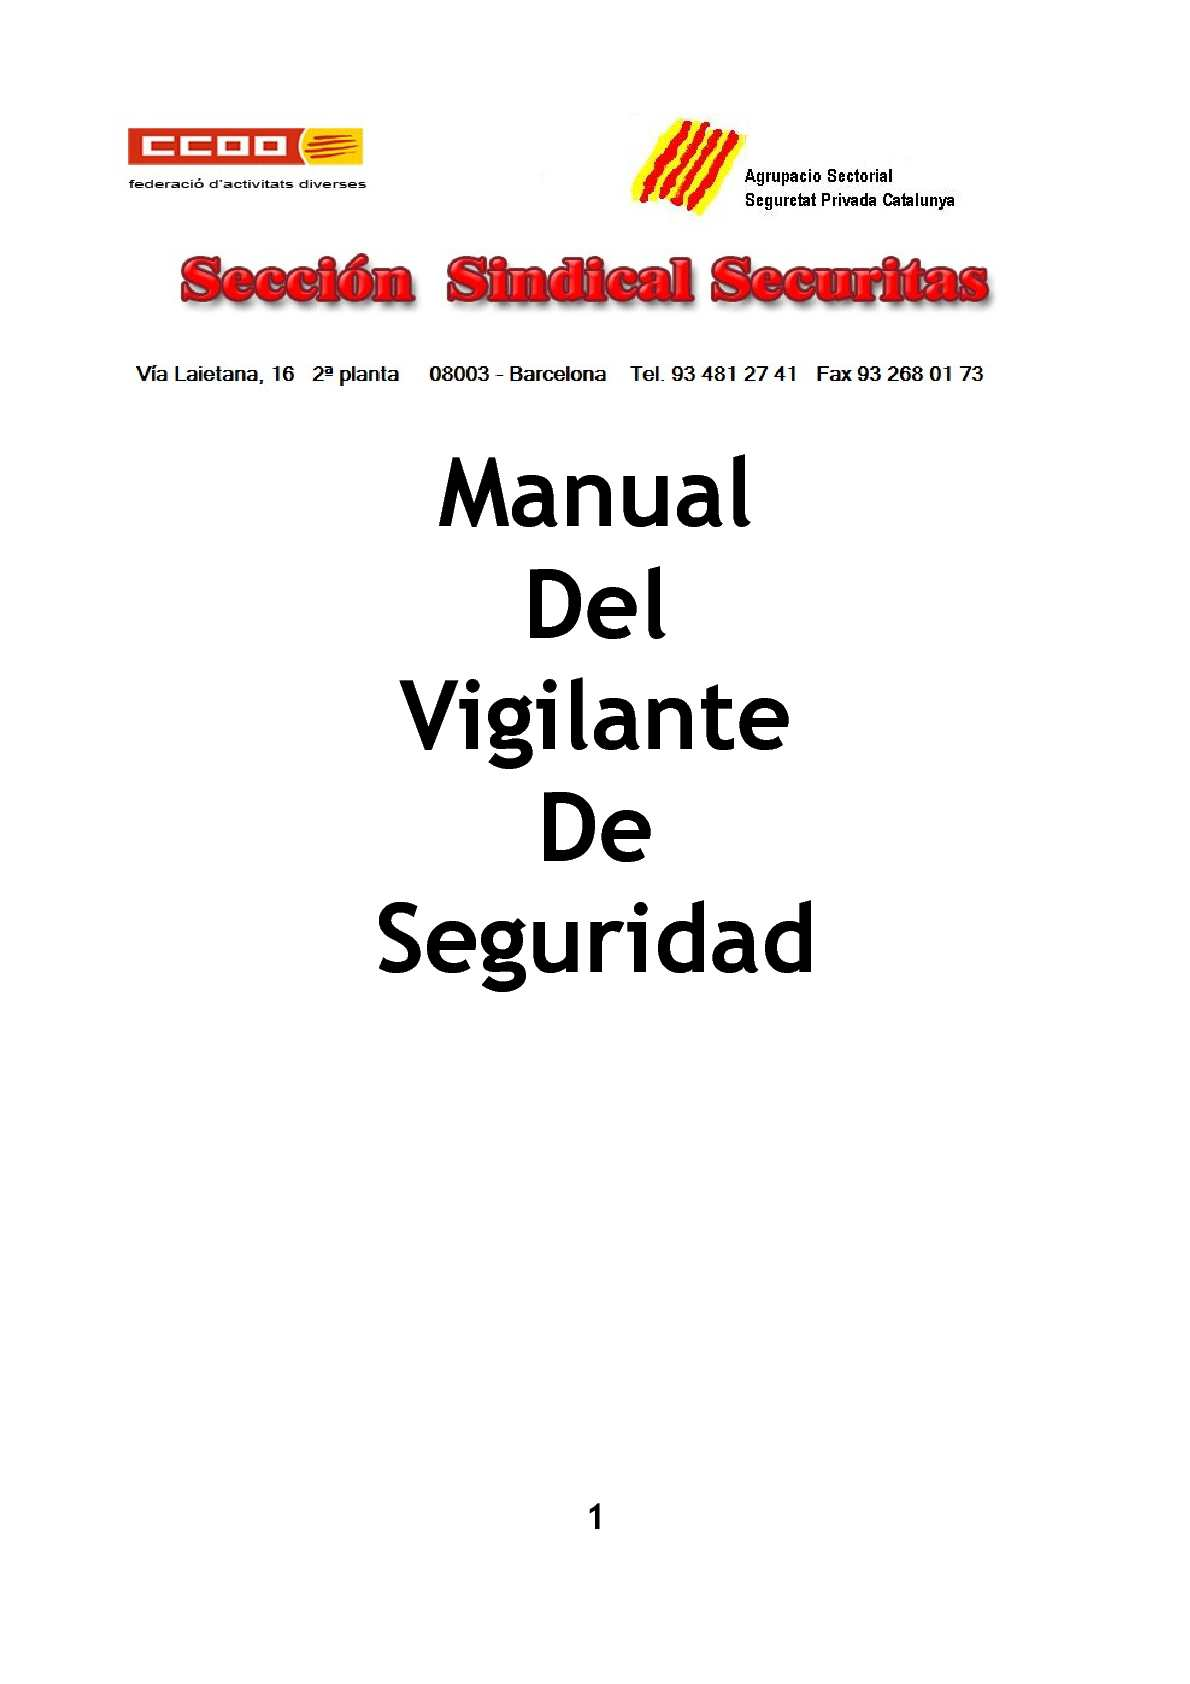 Manual del Vigilante de Seguridad